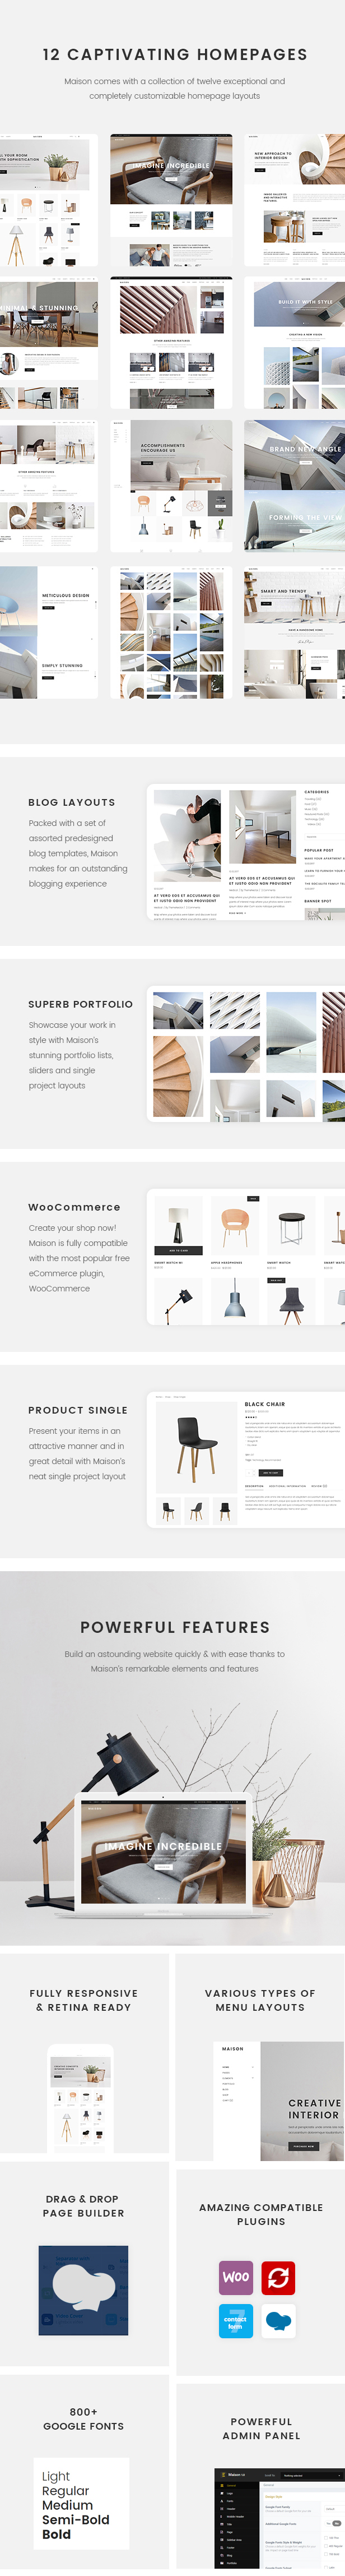 Maison - Modern Theme for Interior Designers and Architects - 1